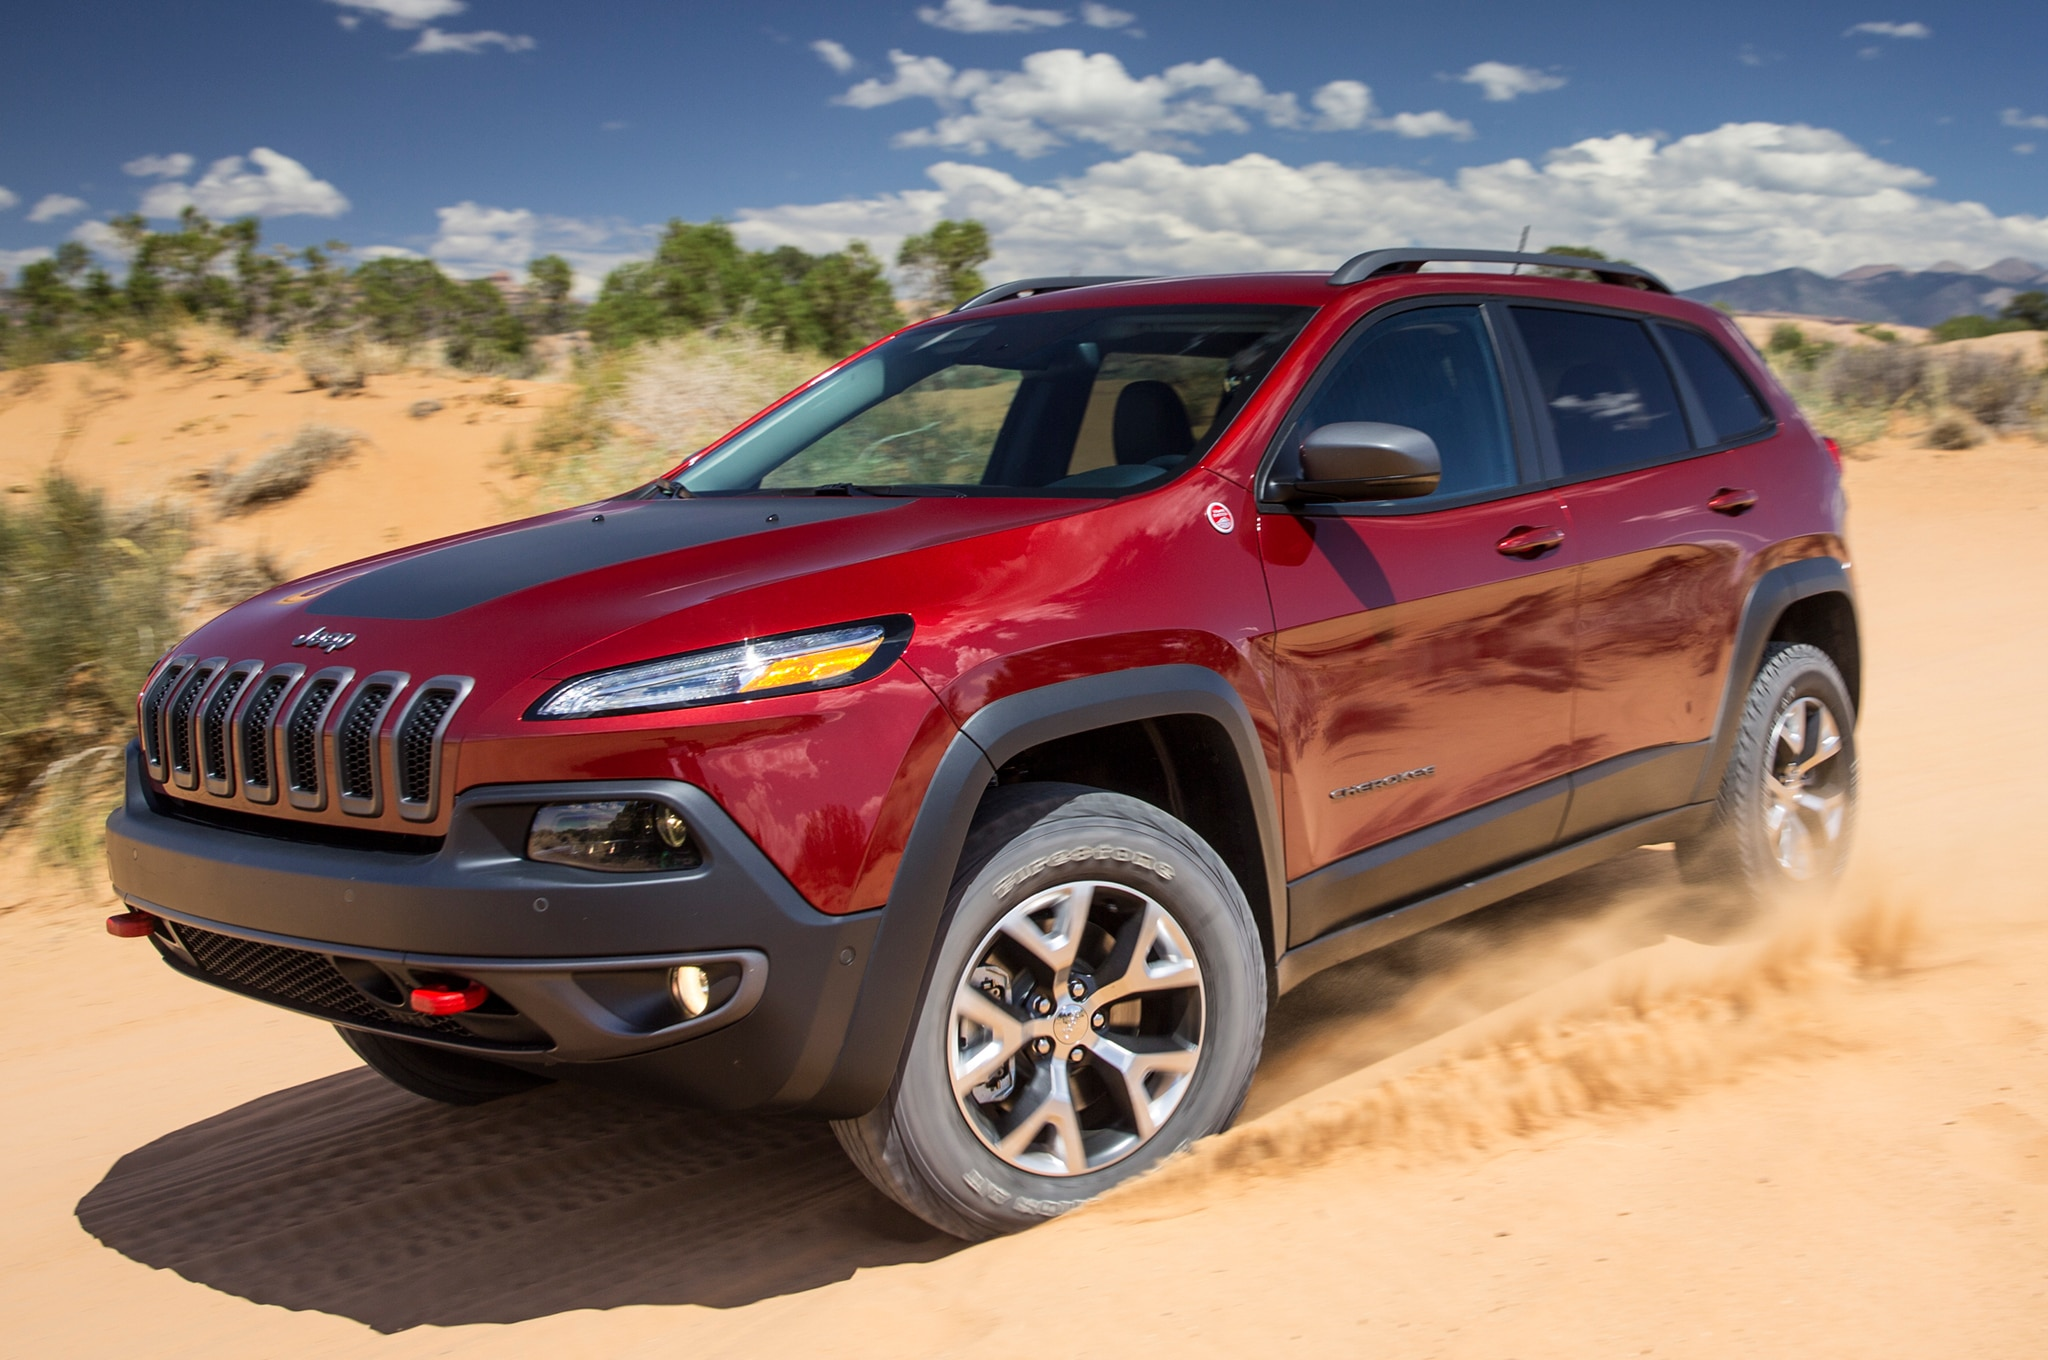 2014 Jeep Cherokee TrailHawk Front Three Quarters1